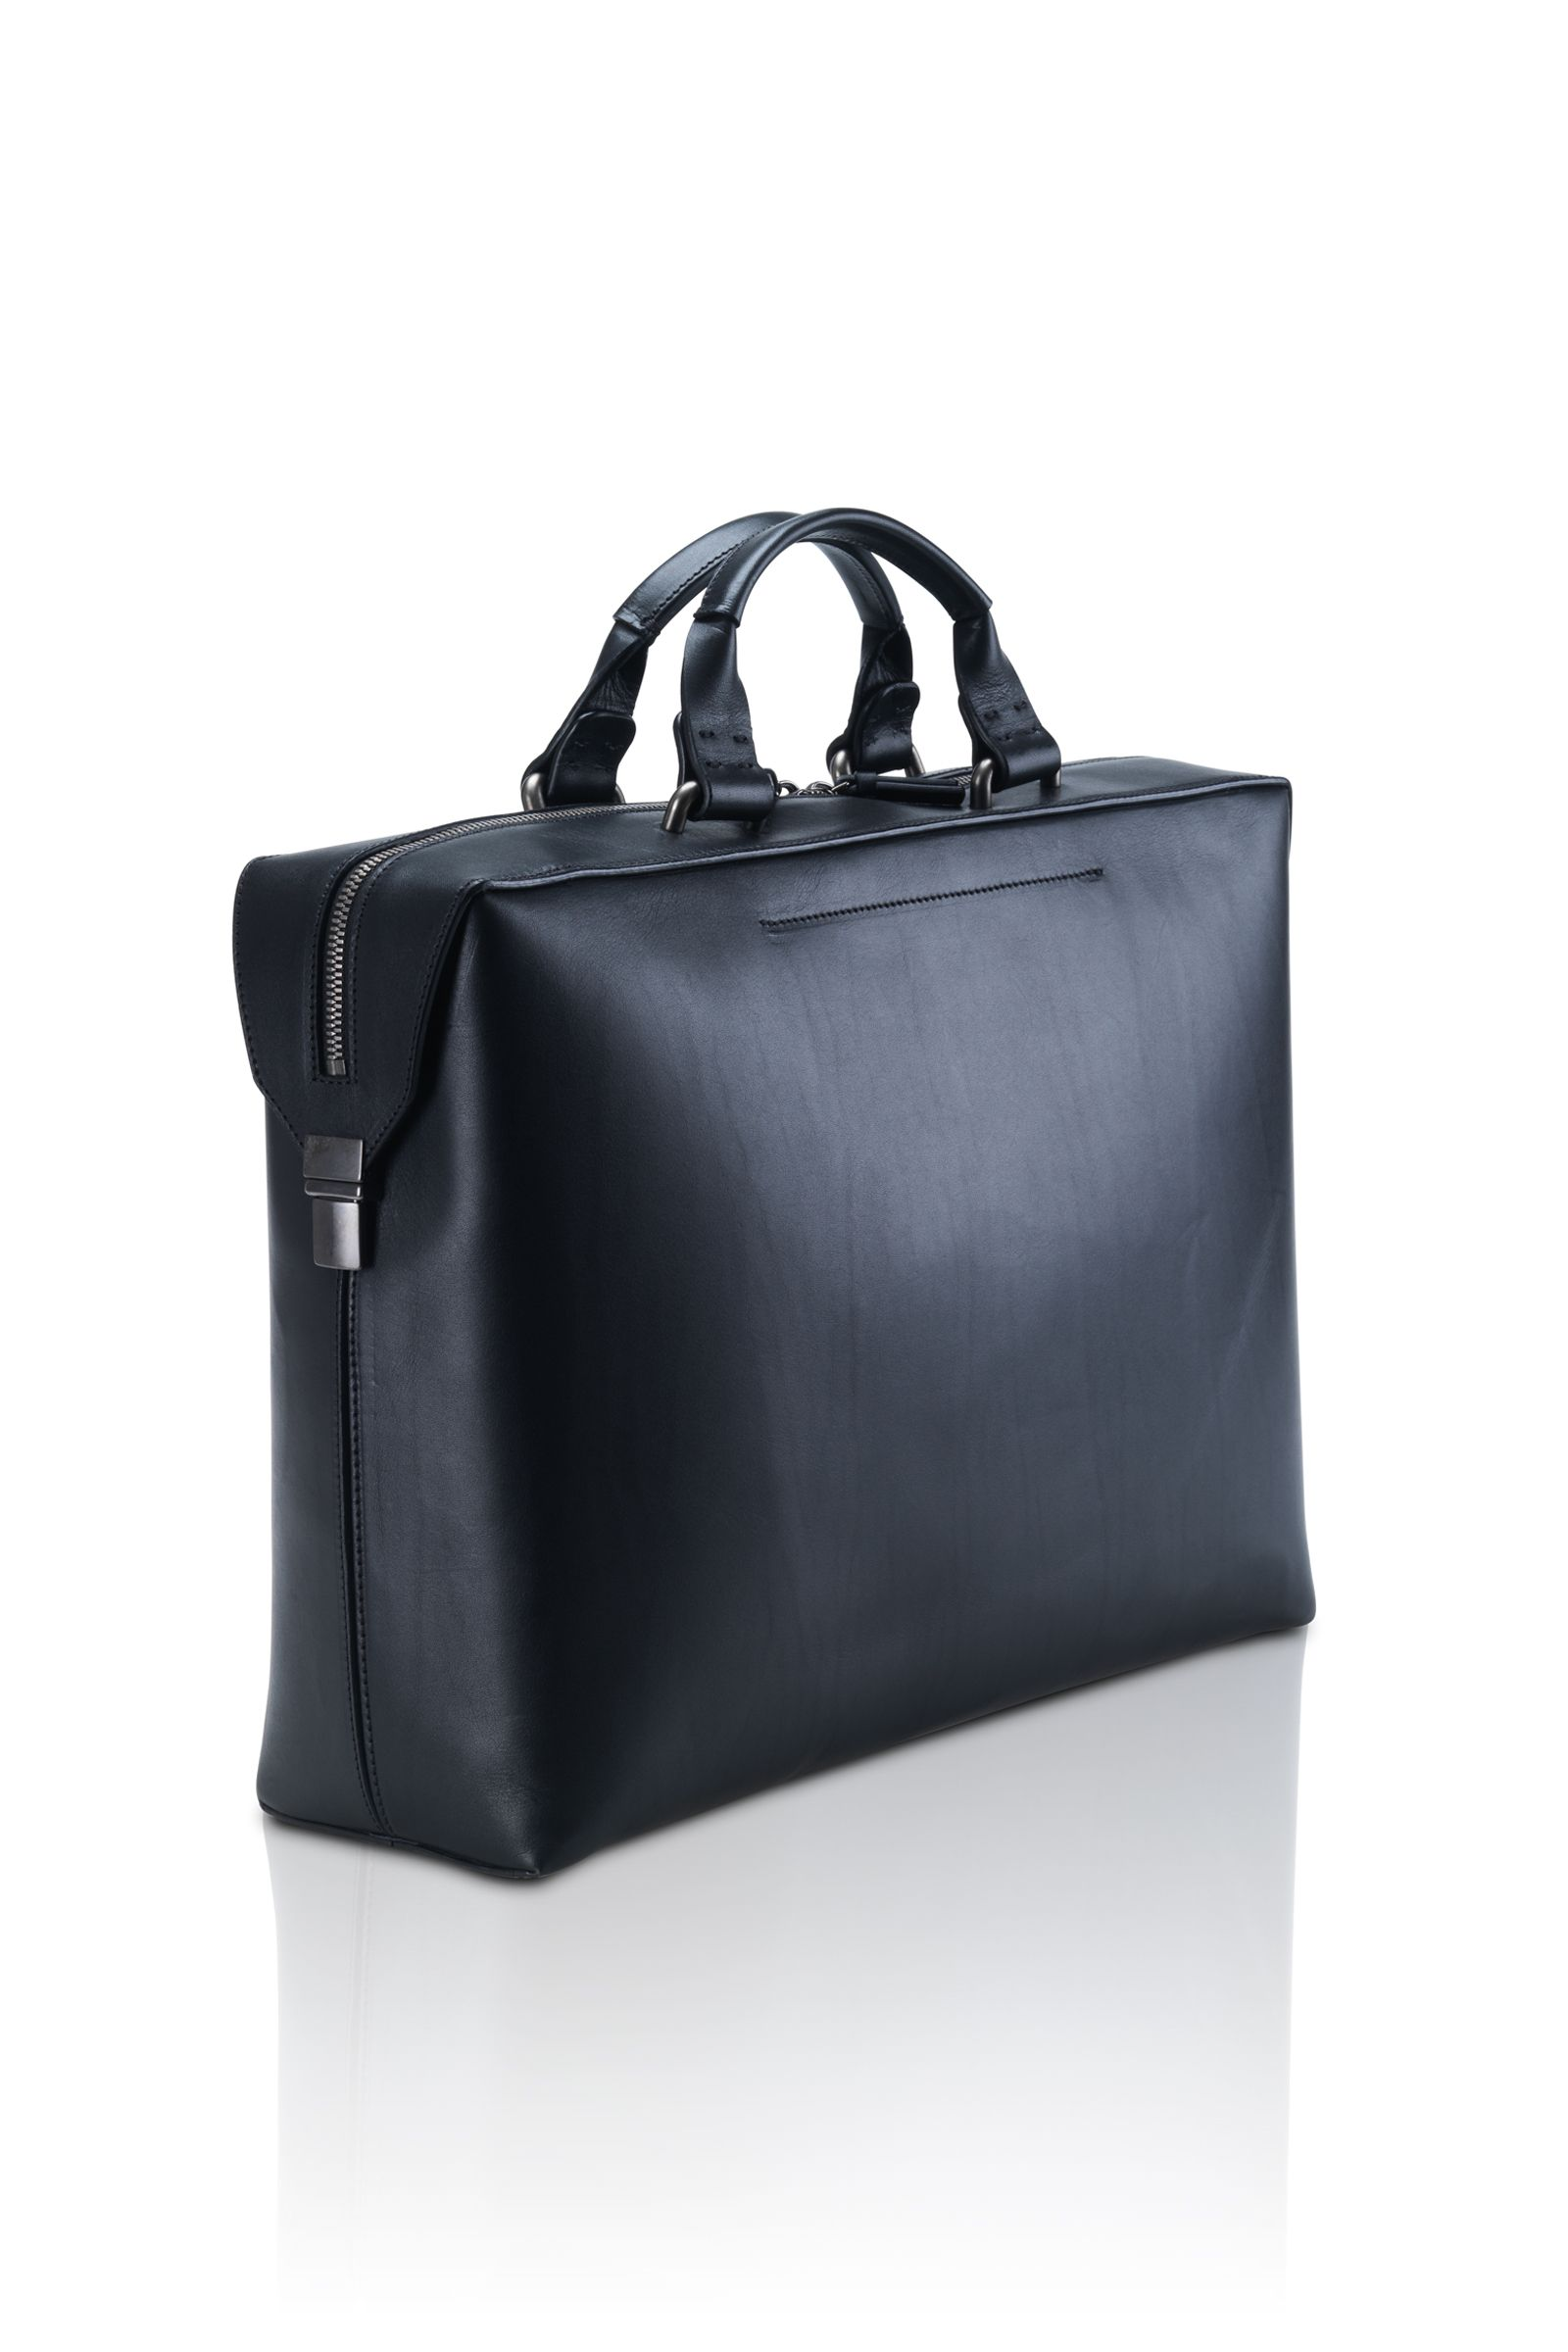 the business bag by bonastre